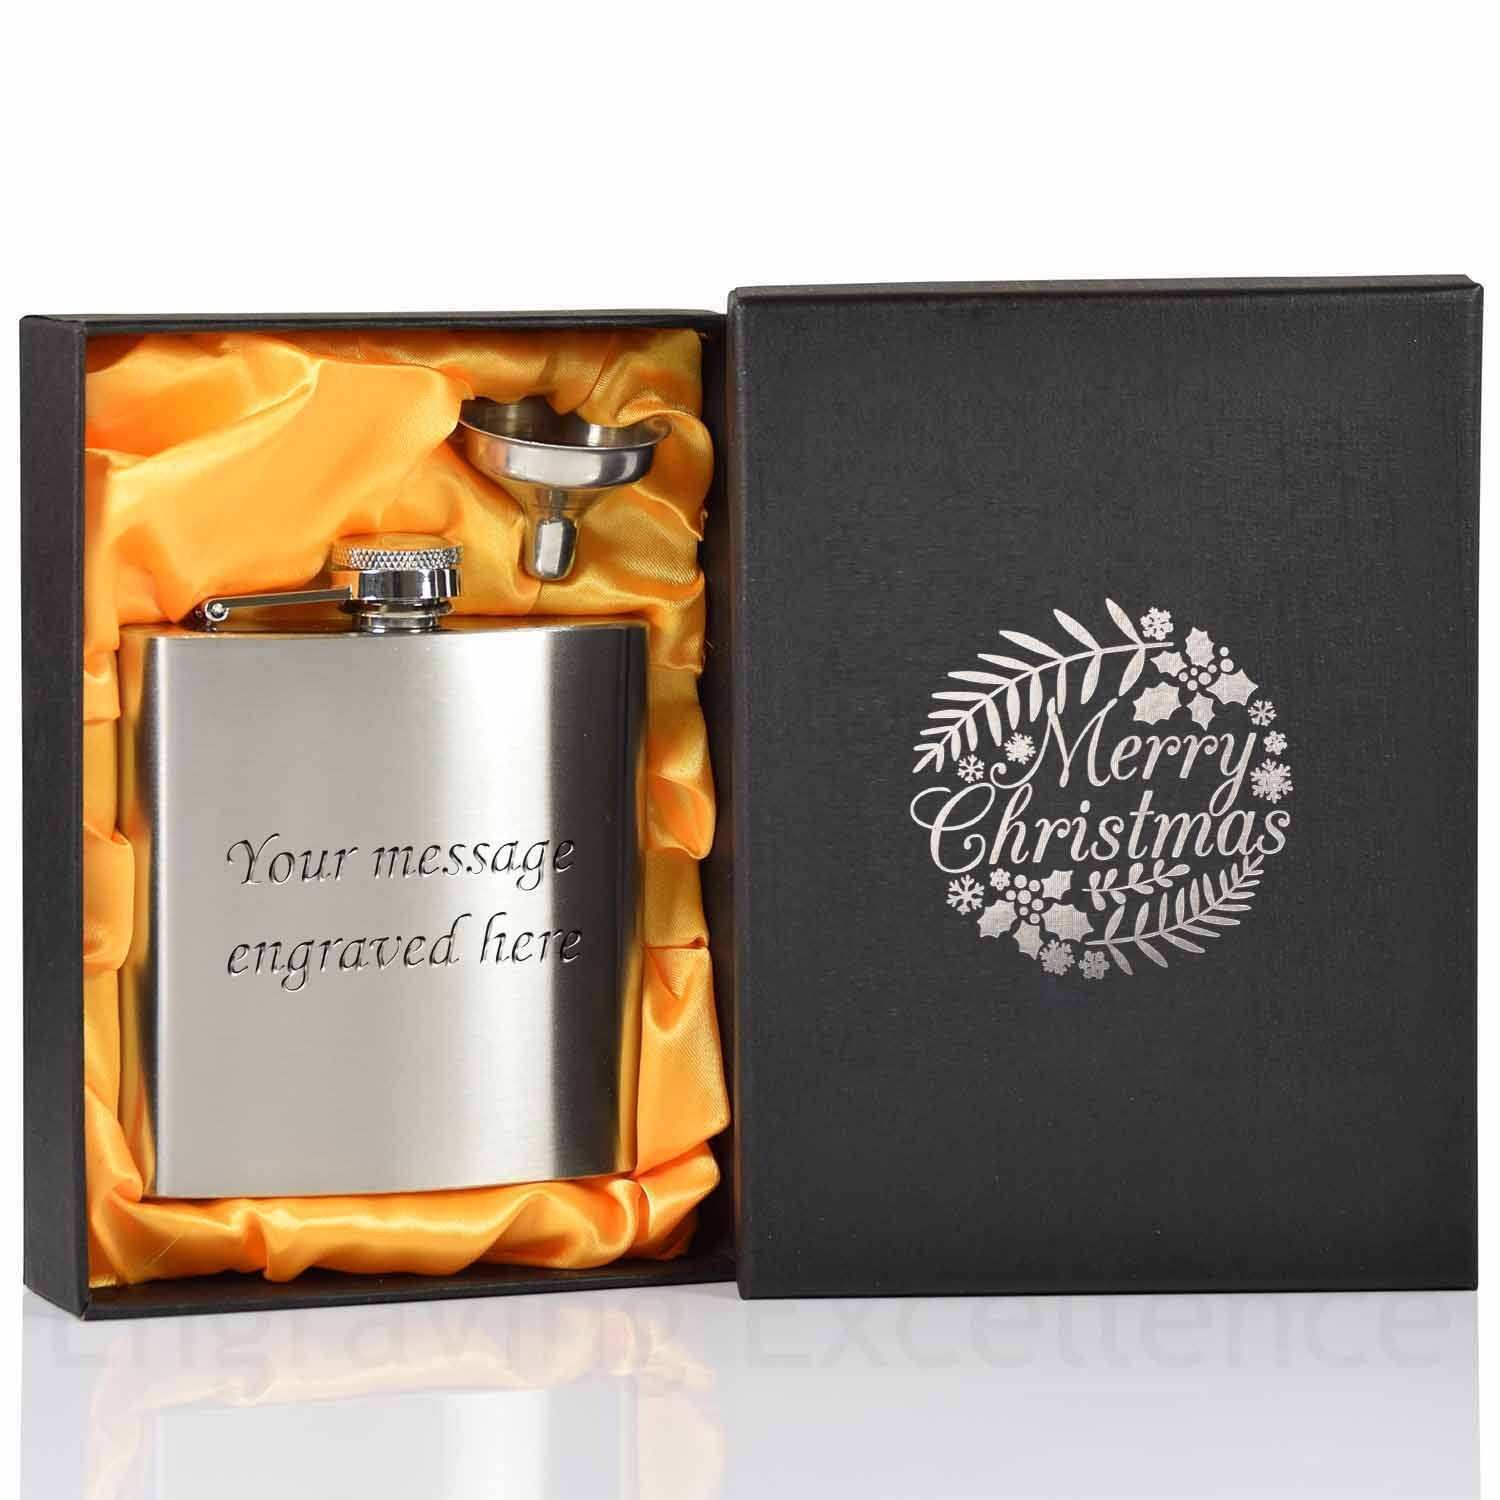 6oz Hip Flask with funnel and Gift Box - Merry Christmas printed lid - Silver